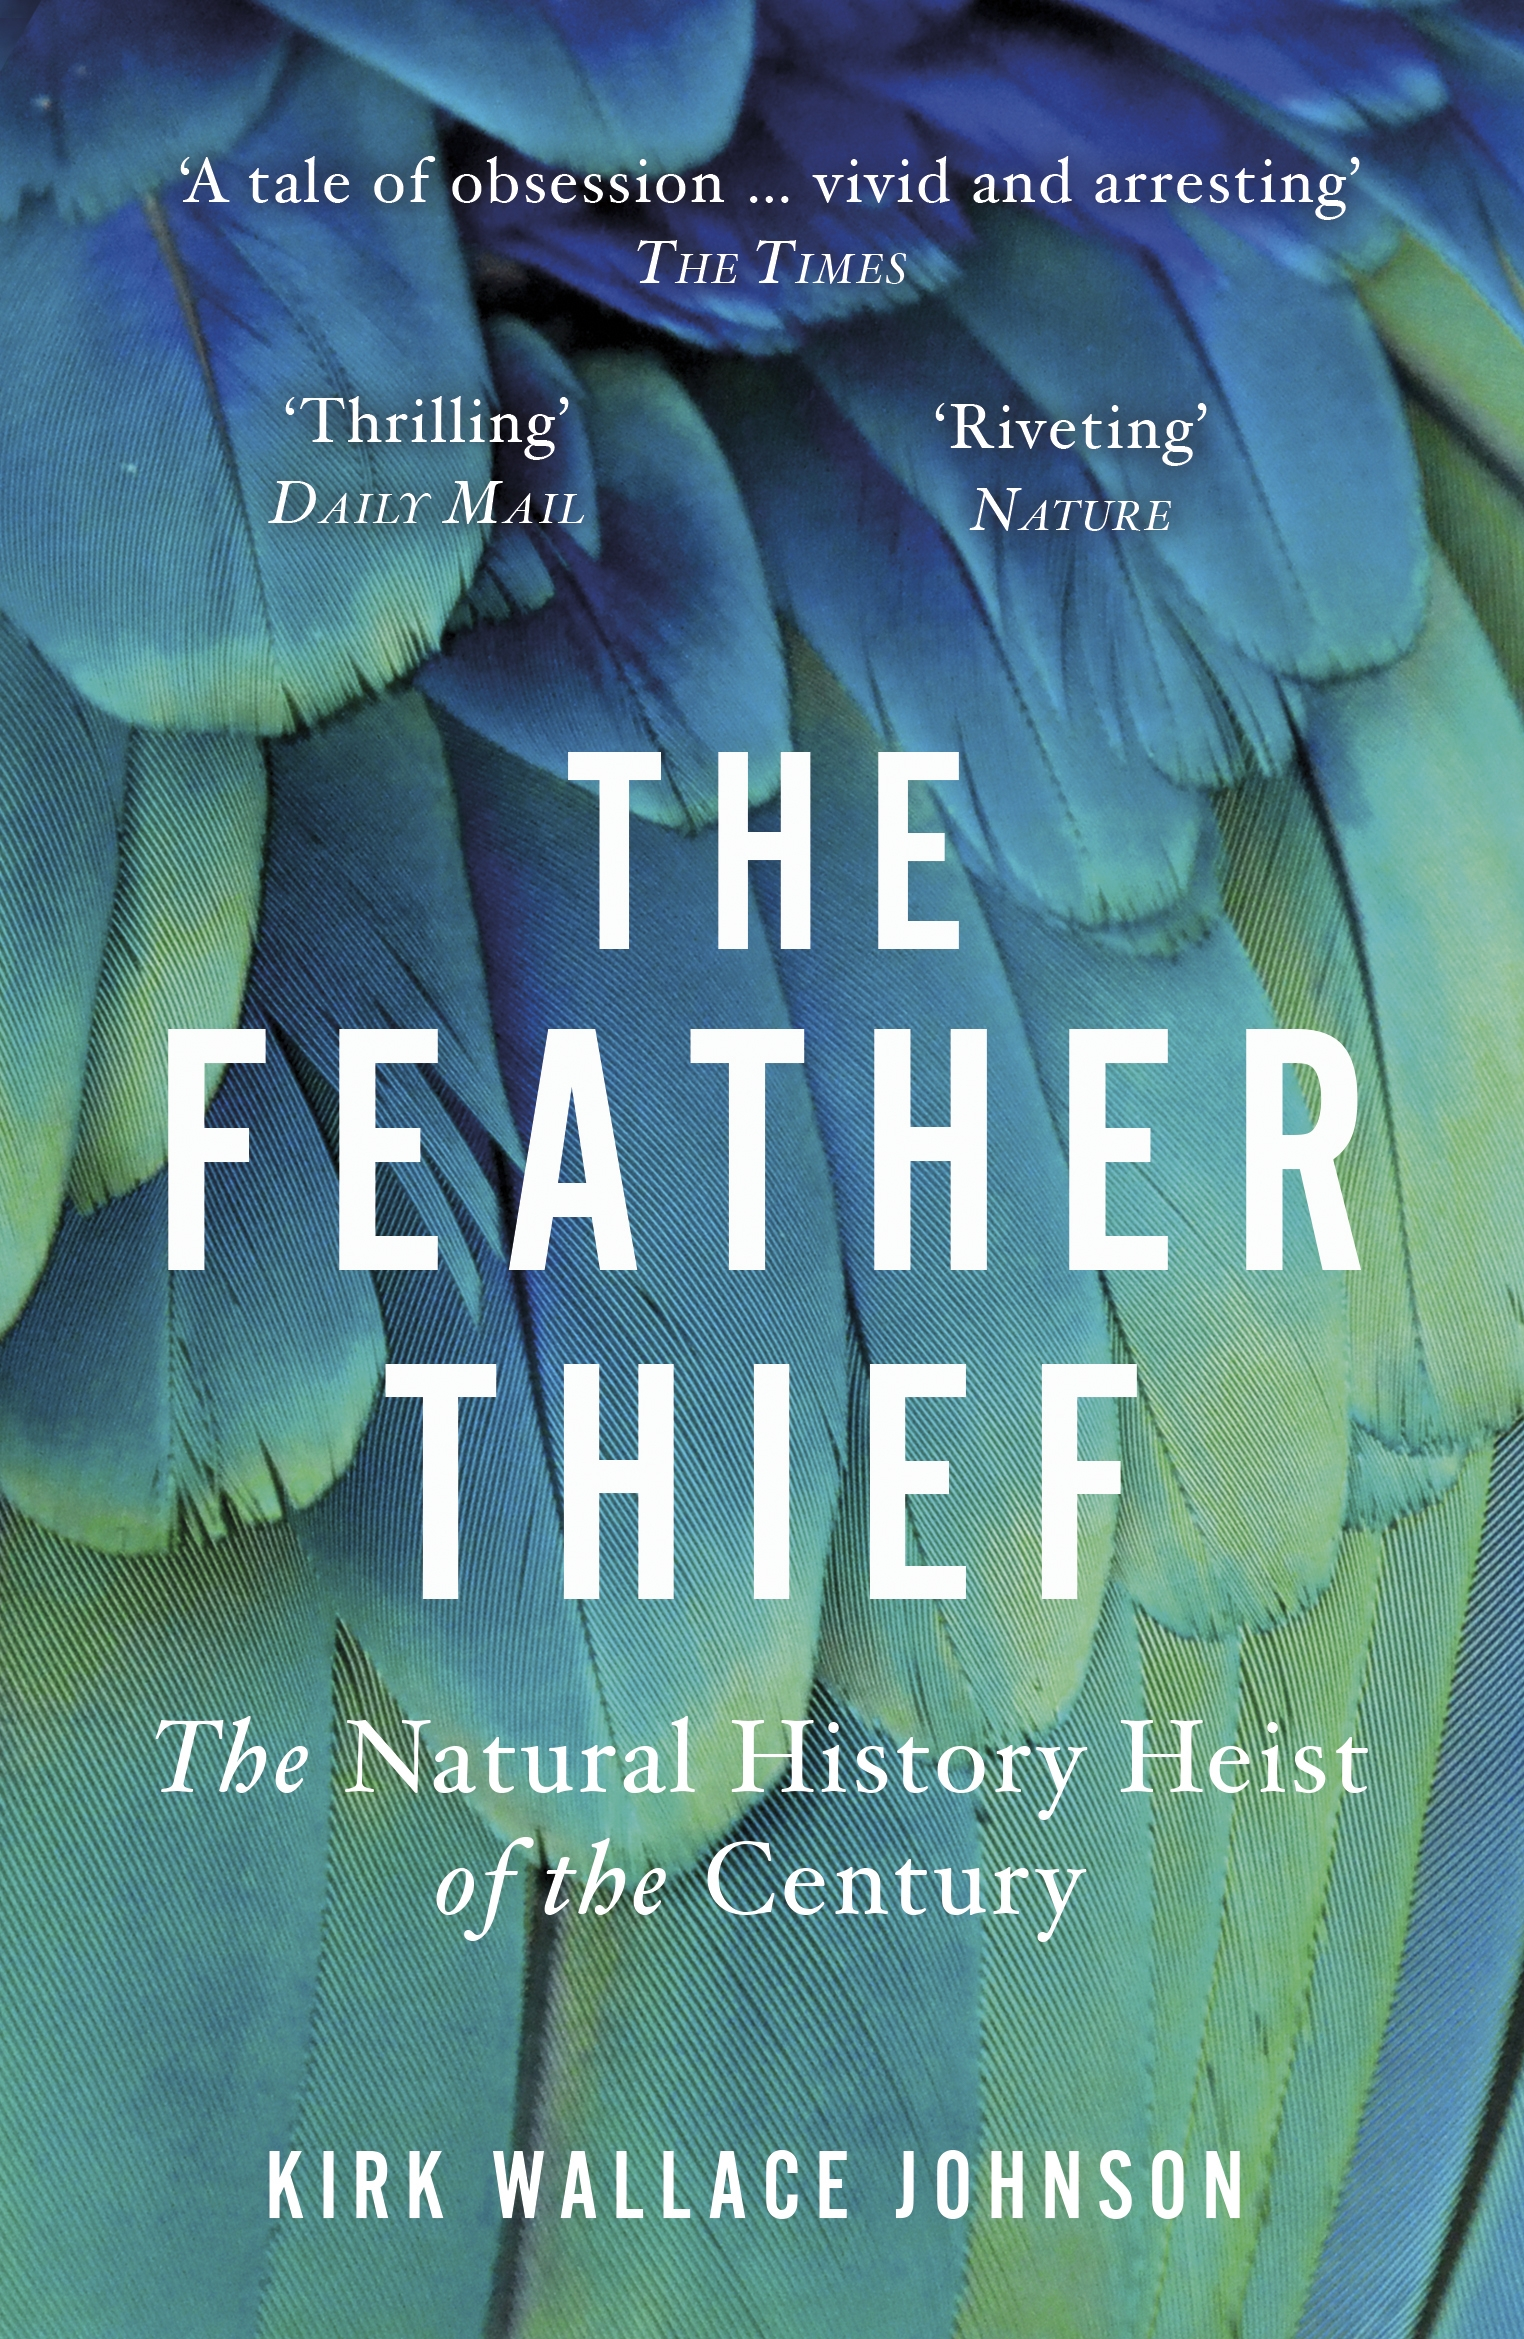 The Feather Thief by Kirk Wallace Johnson - Penguin Books Australia